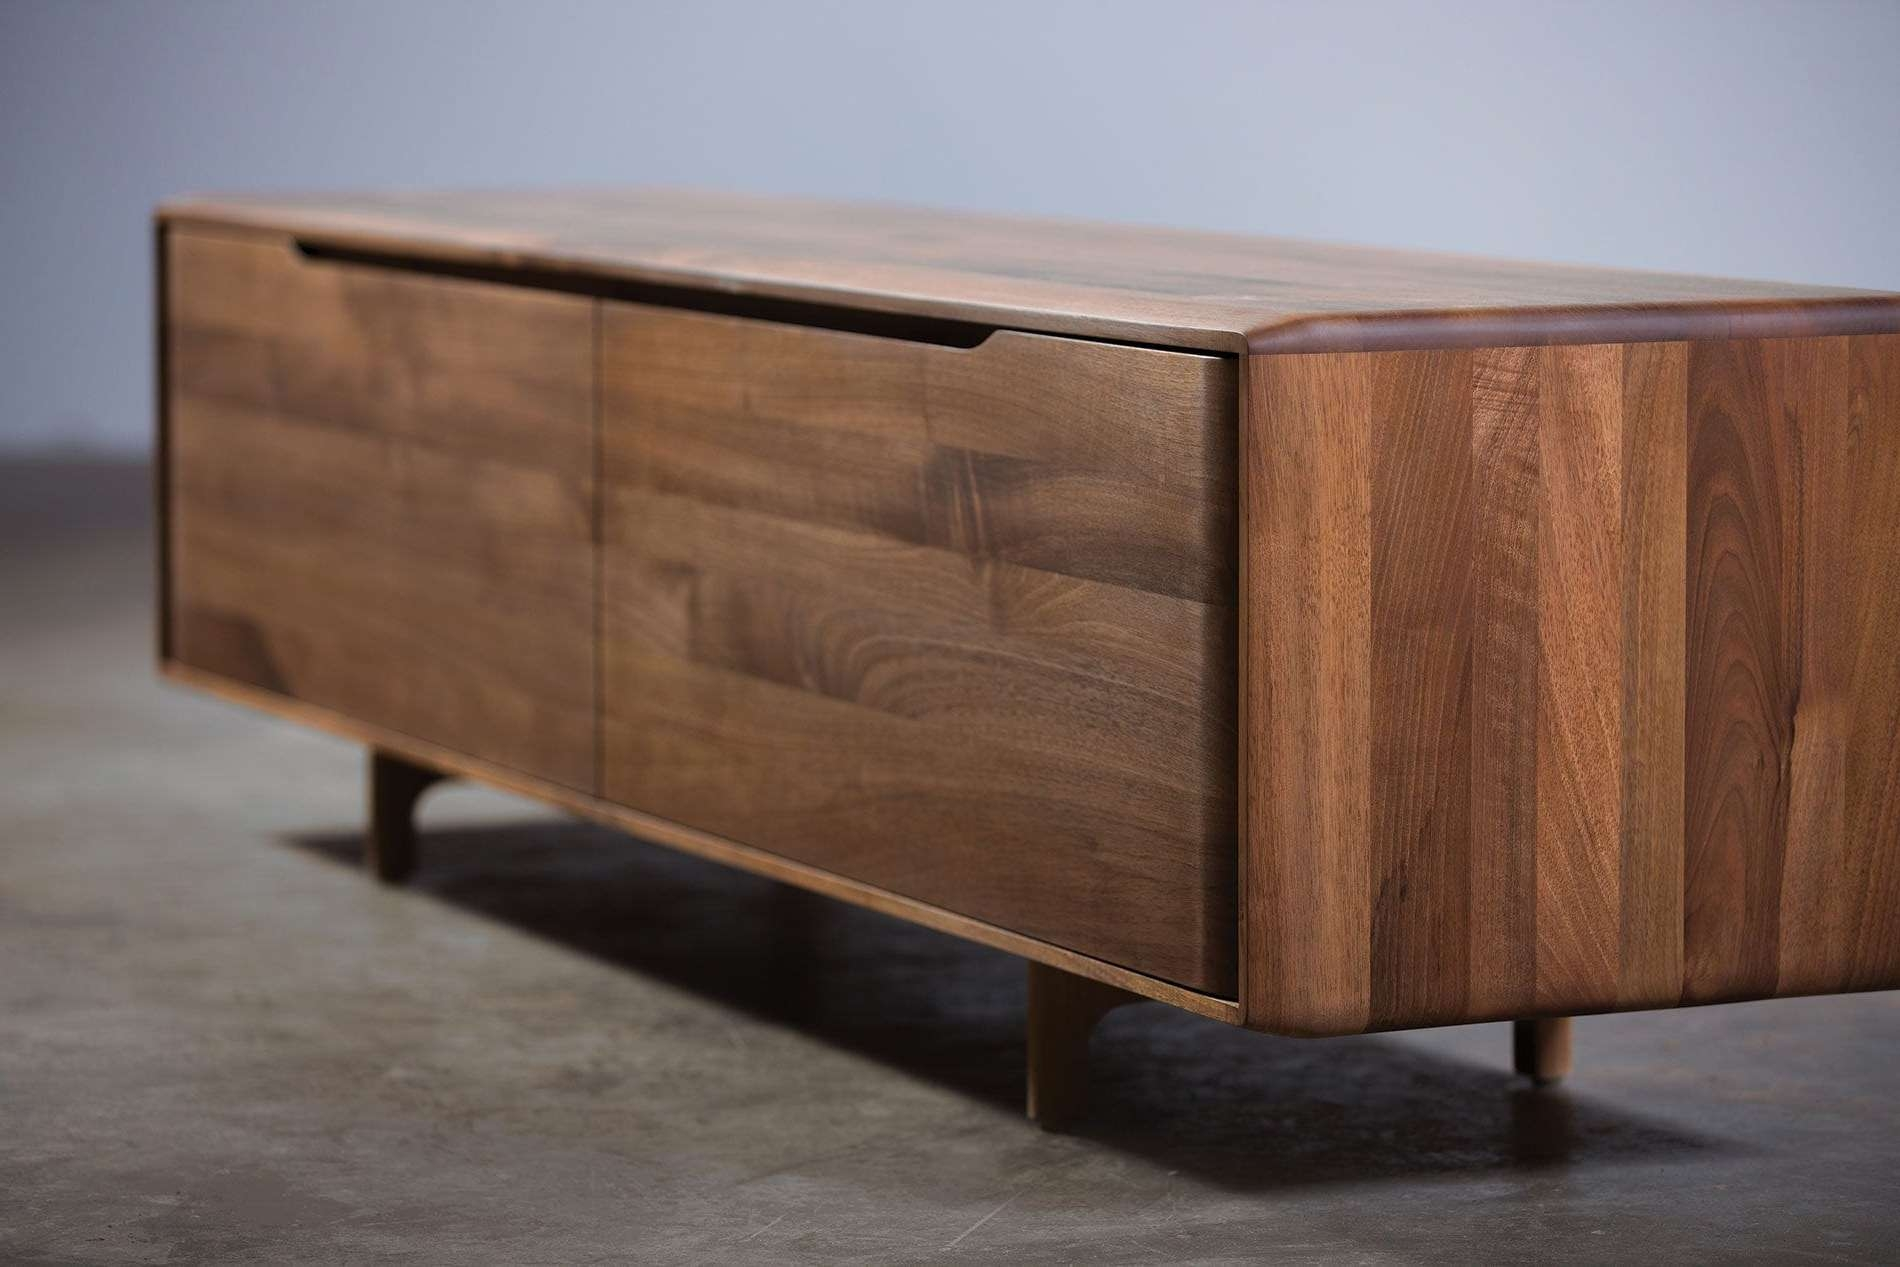 Contemporary Sideboard / Oak / Walnut / Solid Wood – Invito Within Furniture Sideboards (View 4 of 20)